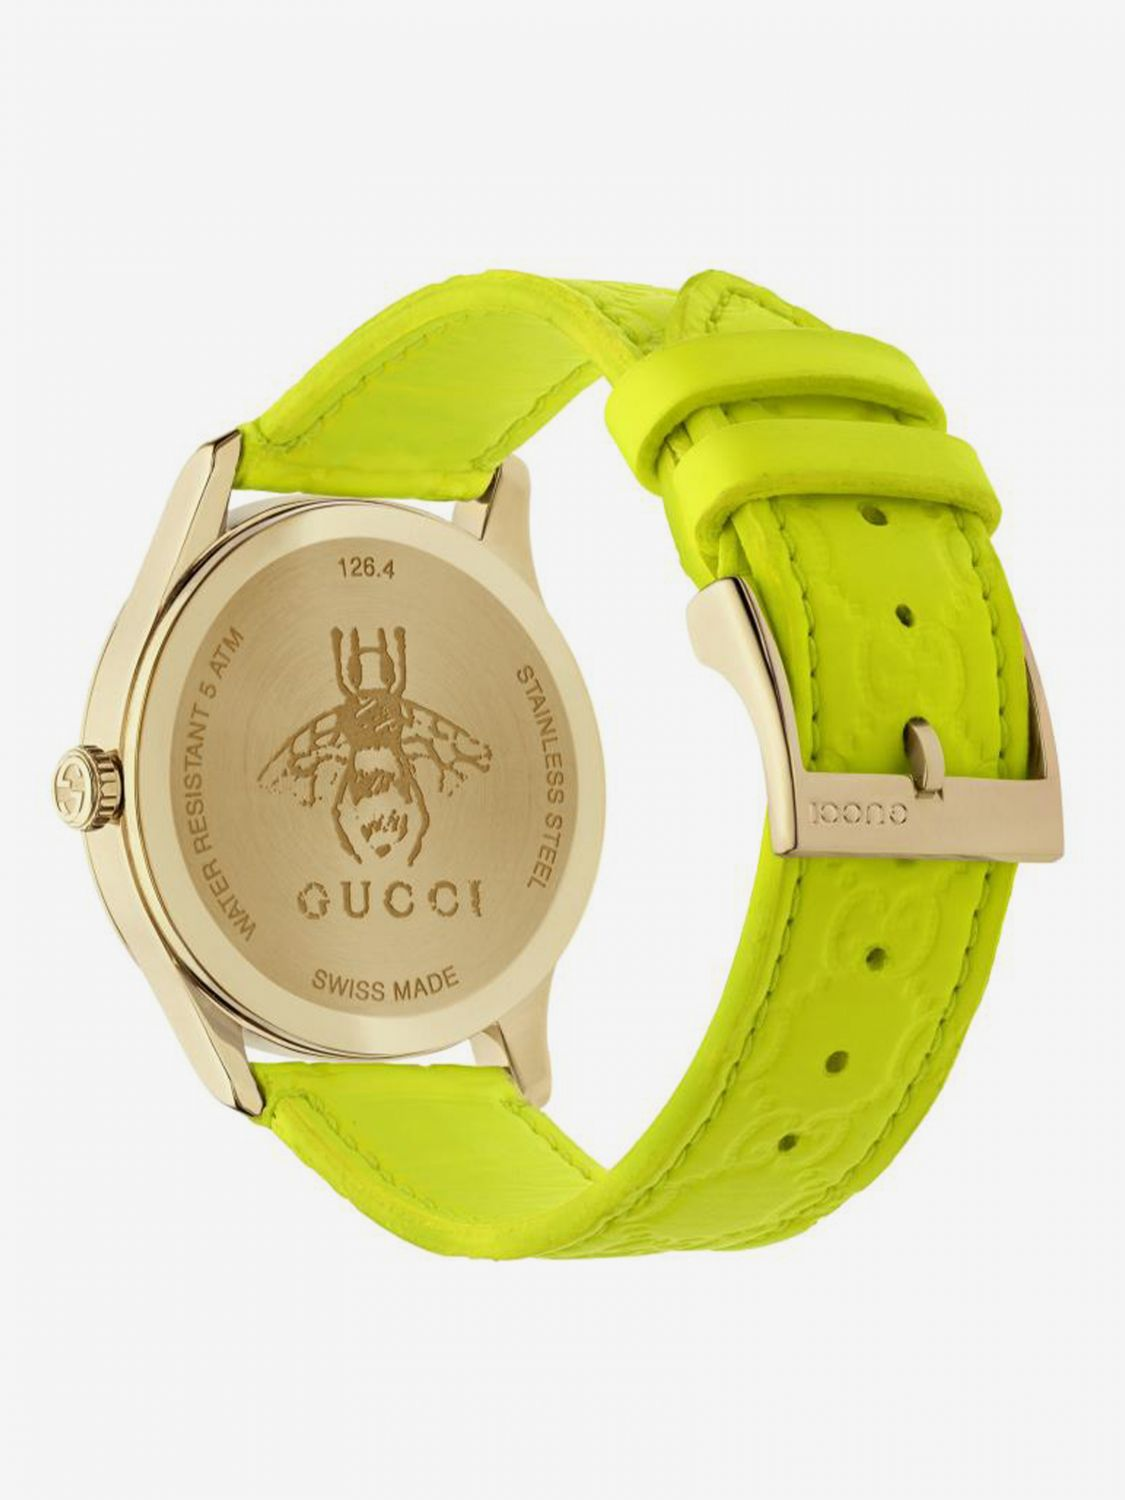 Watch Gucci: GG watch with Gucci strap and metal case yellow 2